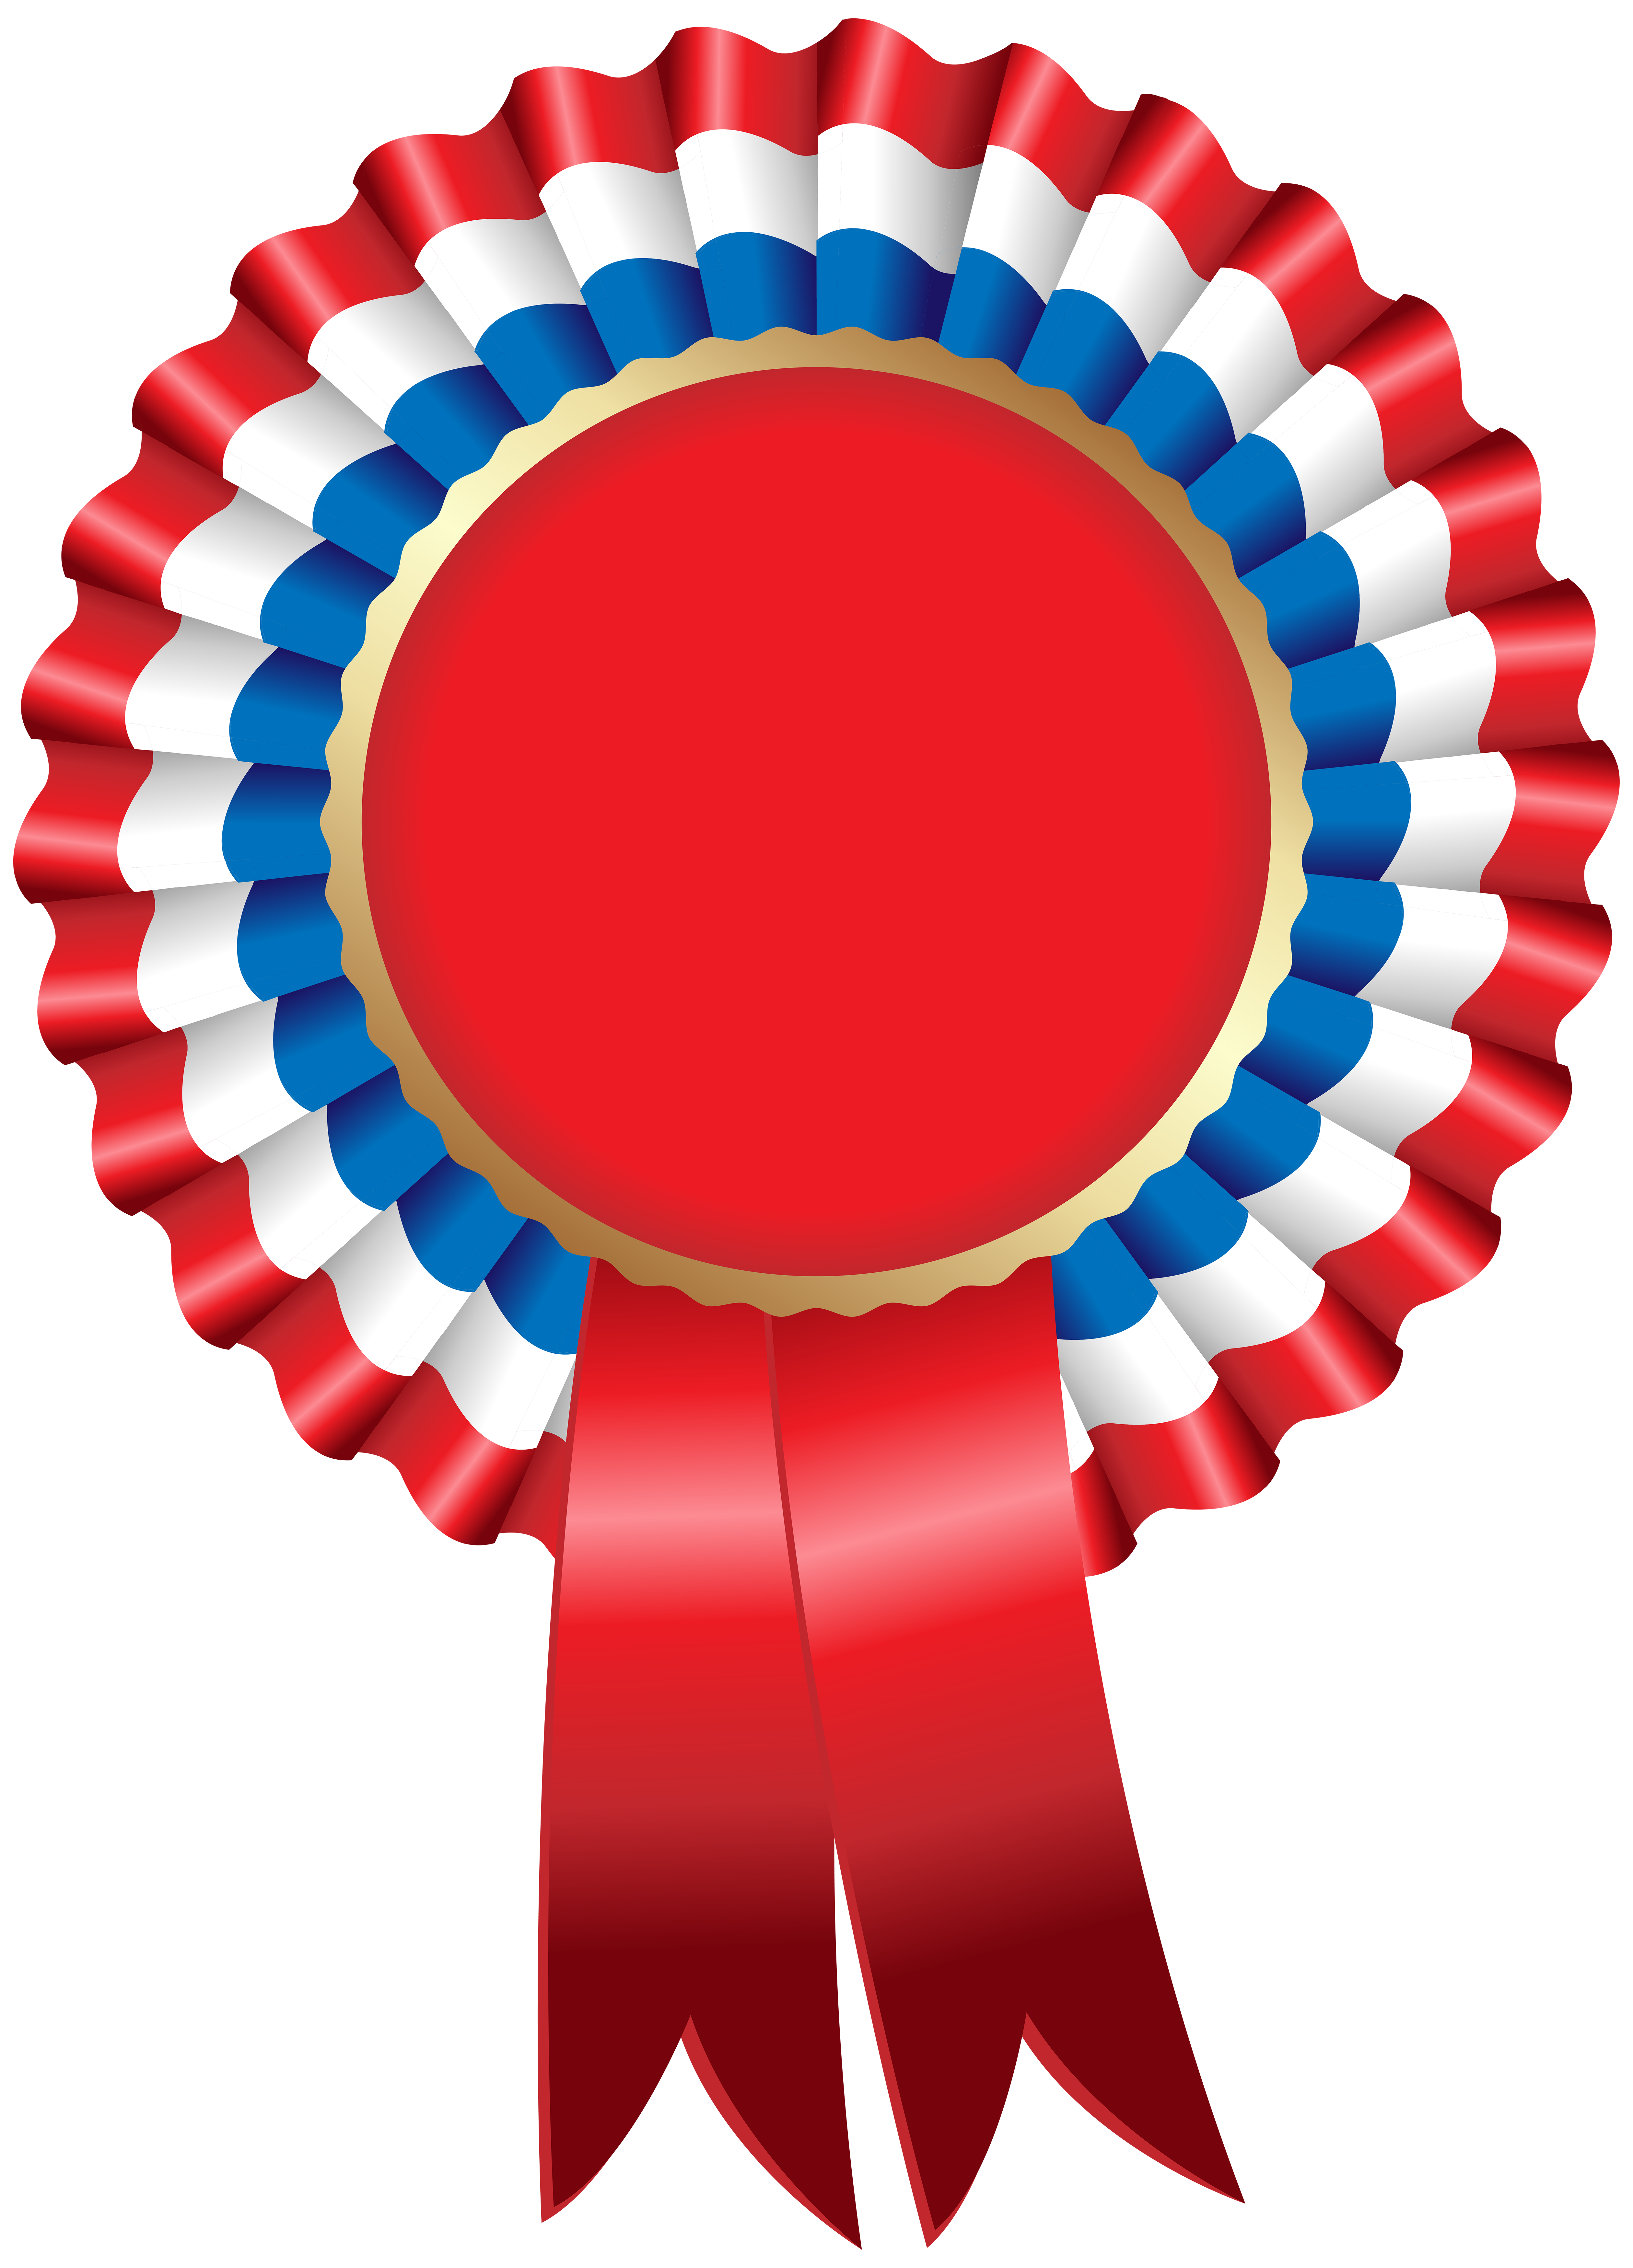 png royalty free library Ribbon png clip art. Good clipart rosette